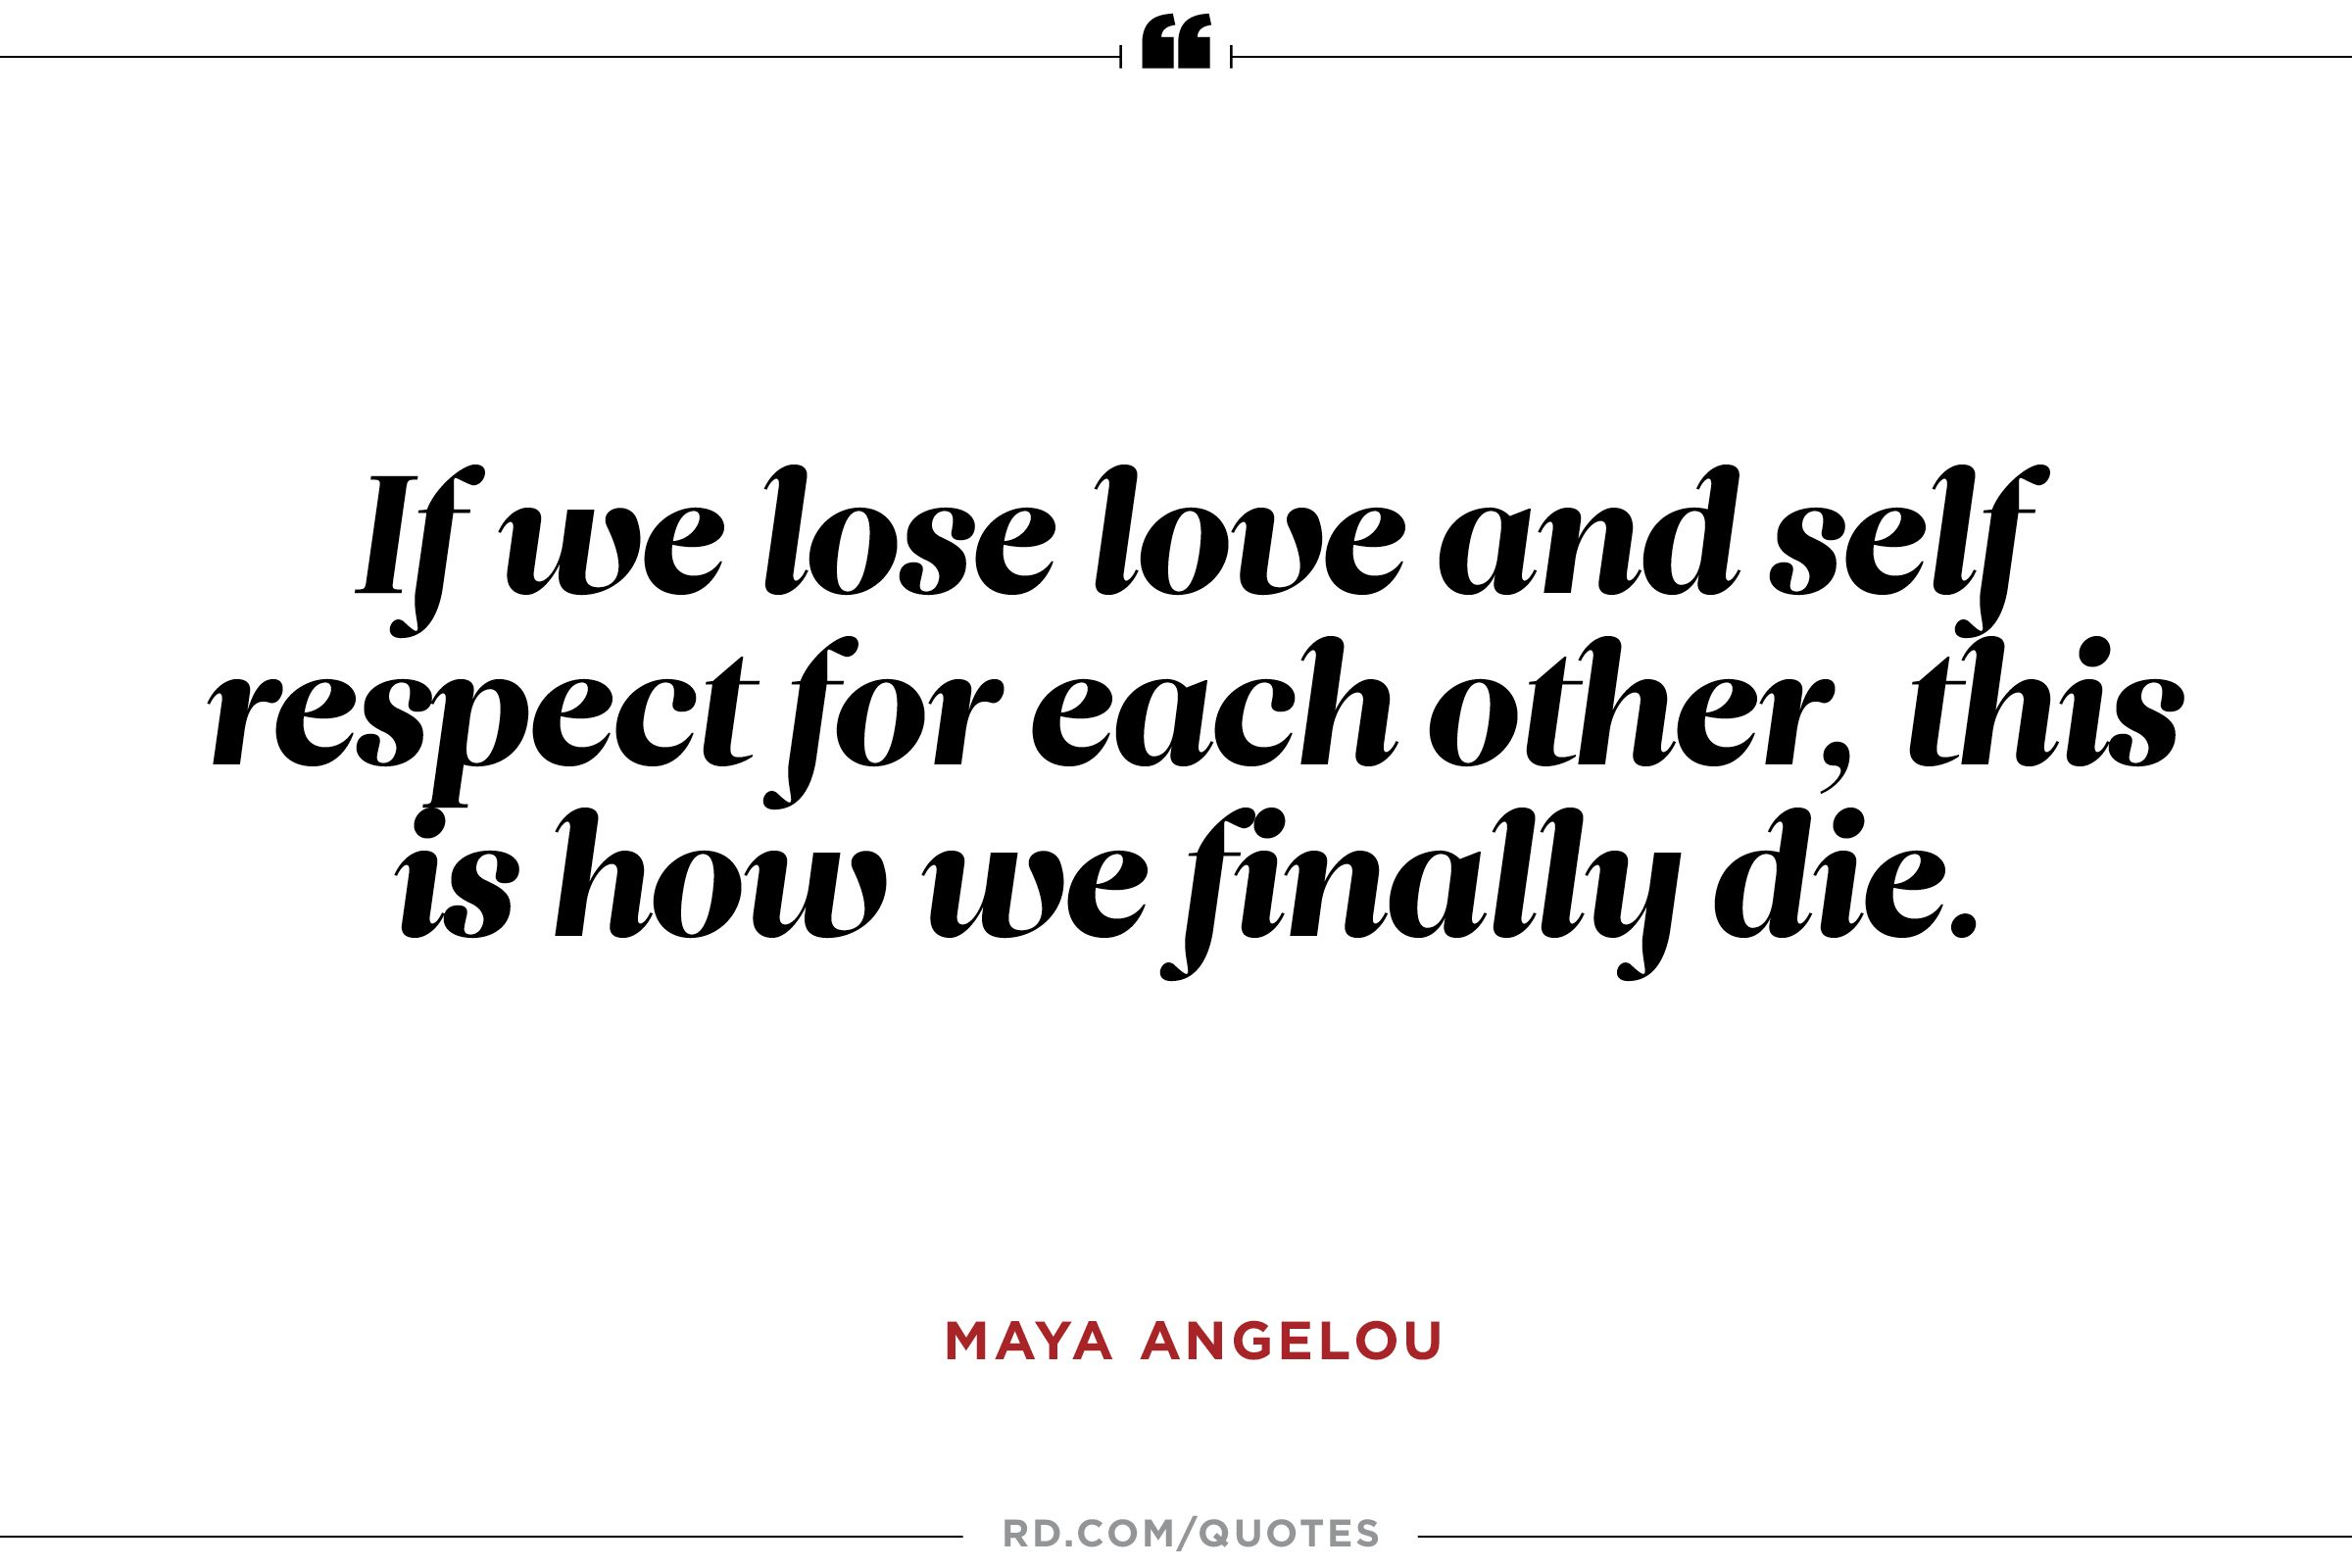 Maya Angelou Quotes On Love And Relationships Maya Angelou At Her Best 8 Quotable Quotes  Reader's Digest